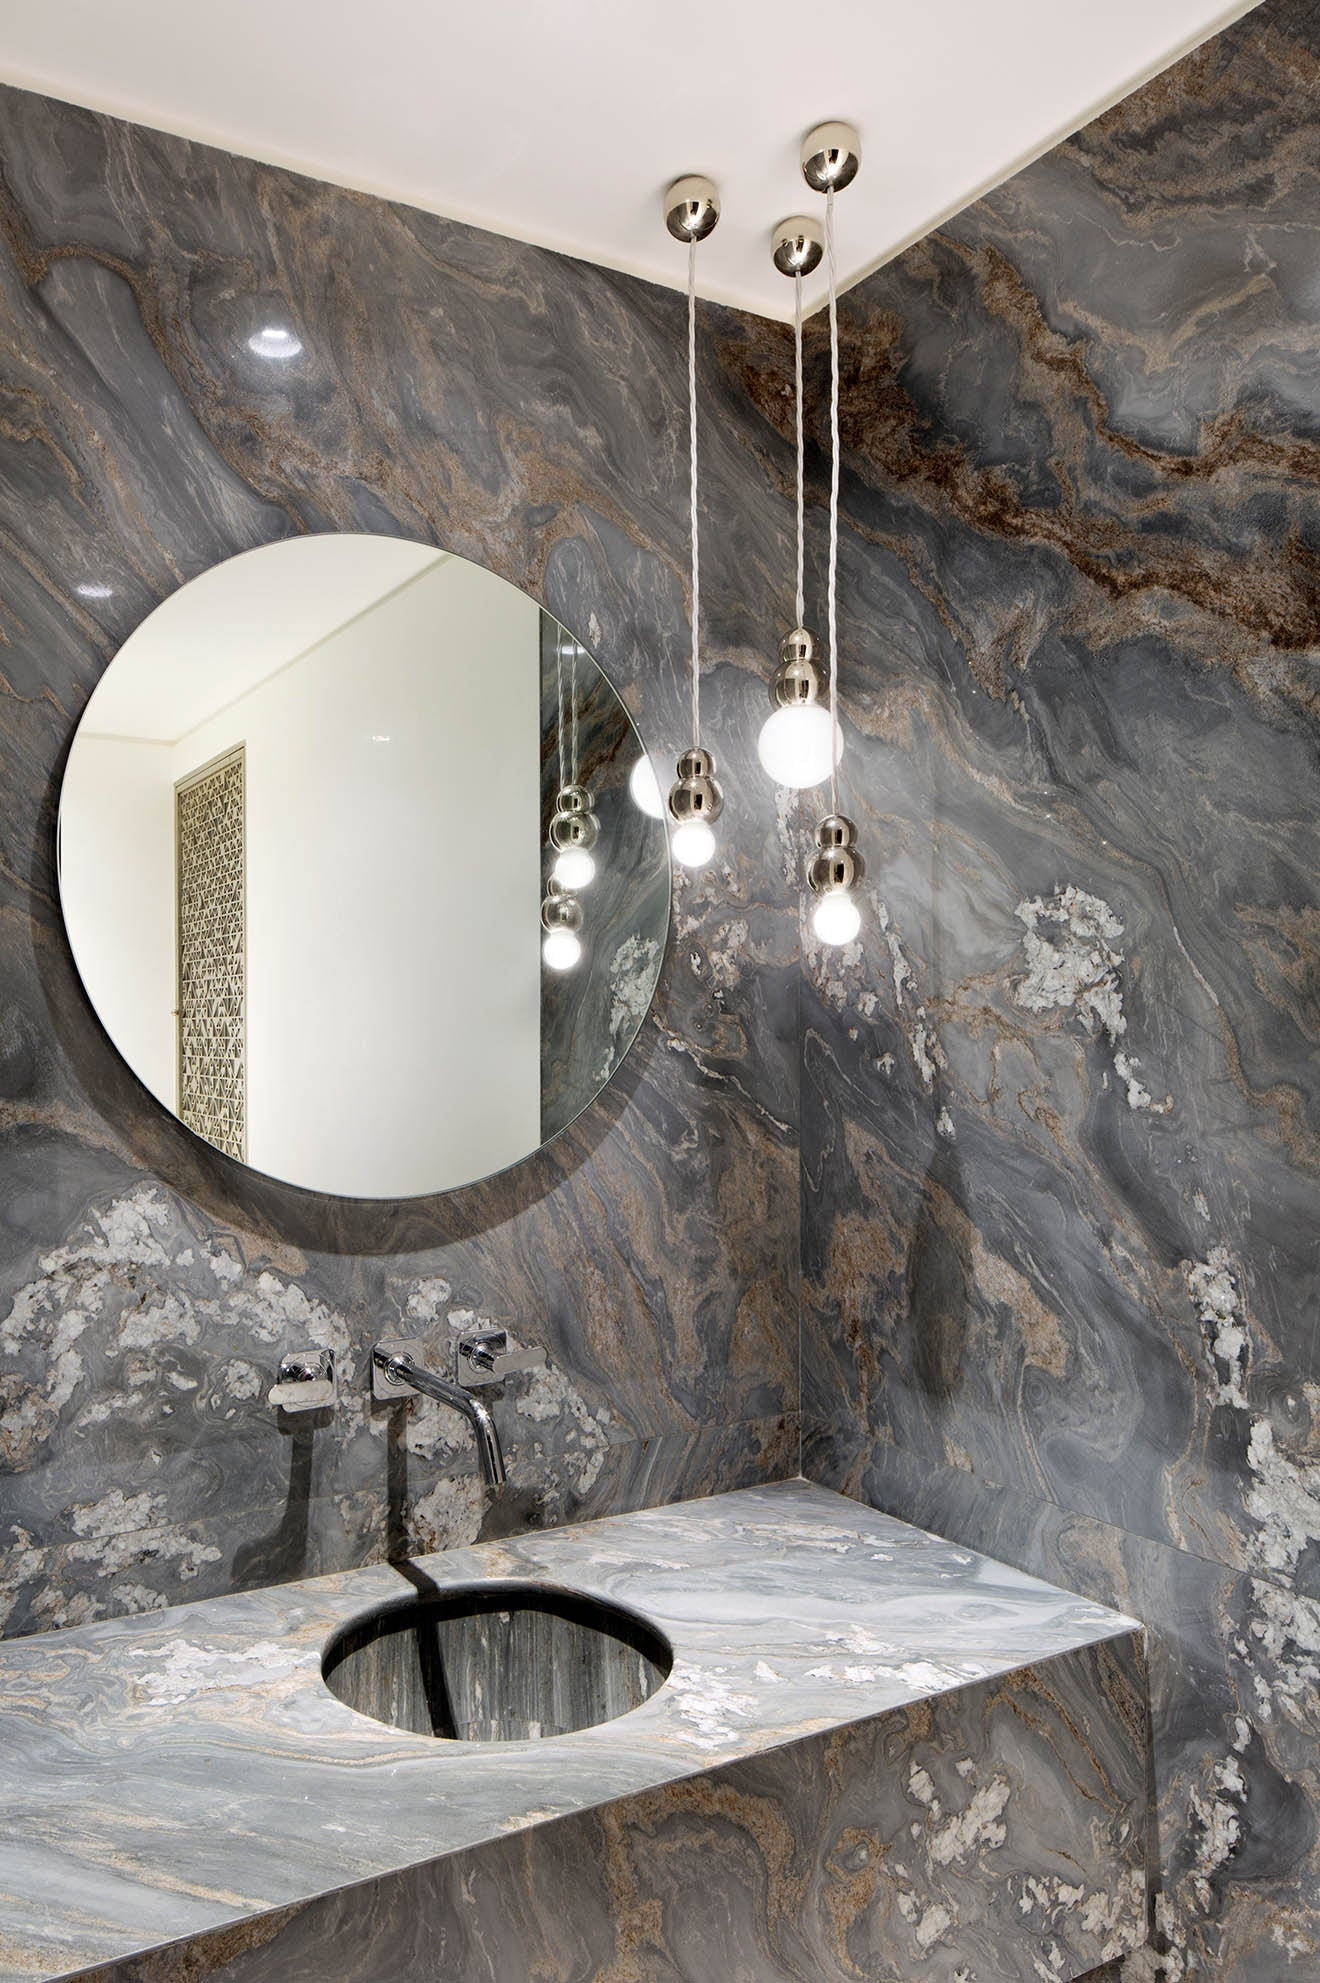 Luxury modern marble washroom with circular mirror and pendant lighting